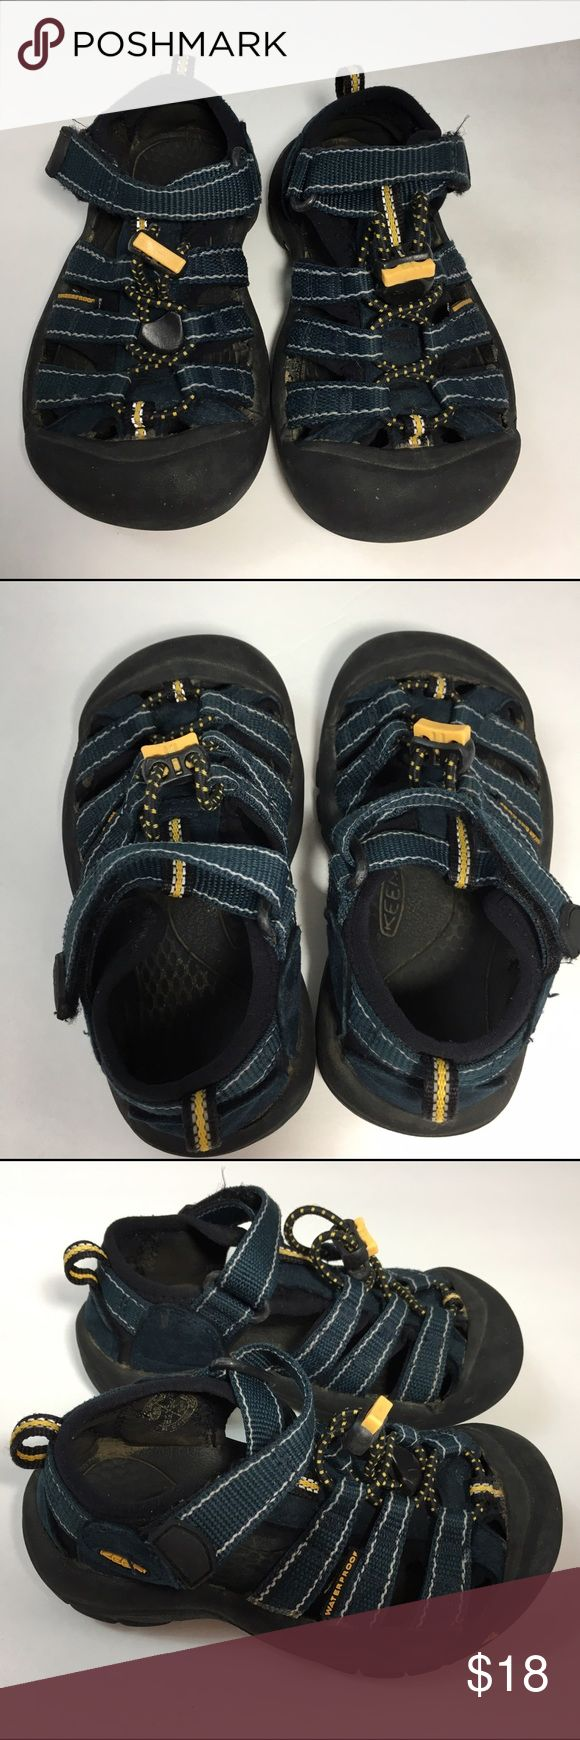 Keen Boys Newport h2 navy blue sandals sz 10 These are in good used condition. The size number has worn off but you can see it says the UK size 9 which is the US size 10. Keen Shoes Sandals & Flip Flops